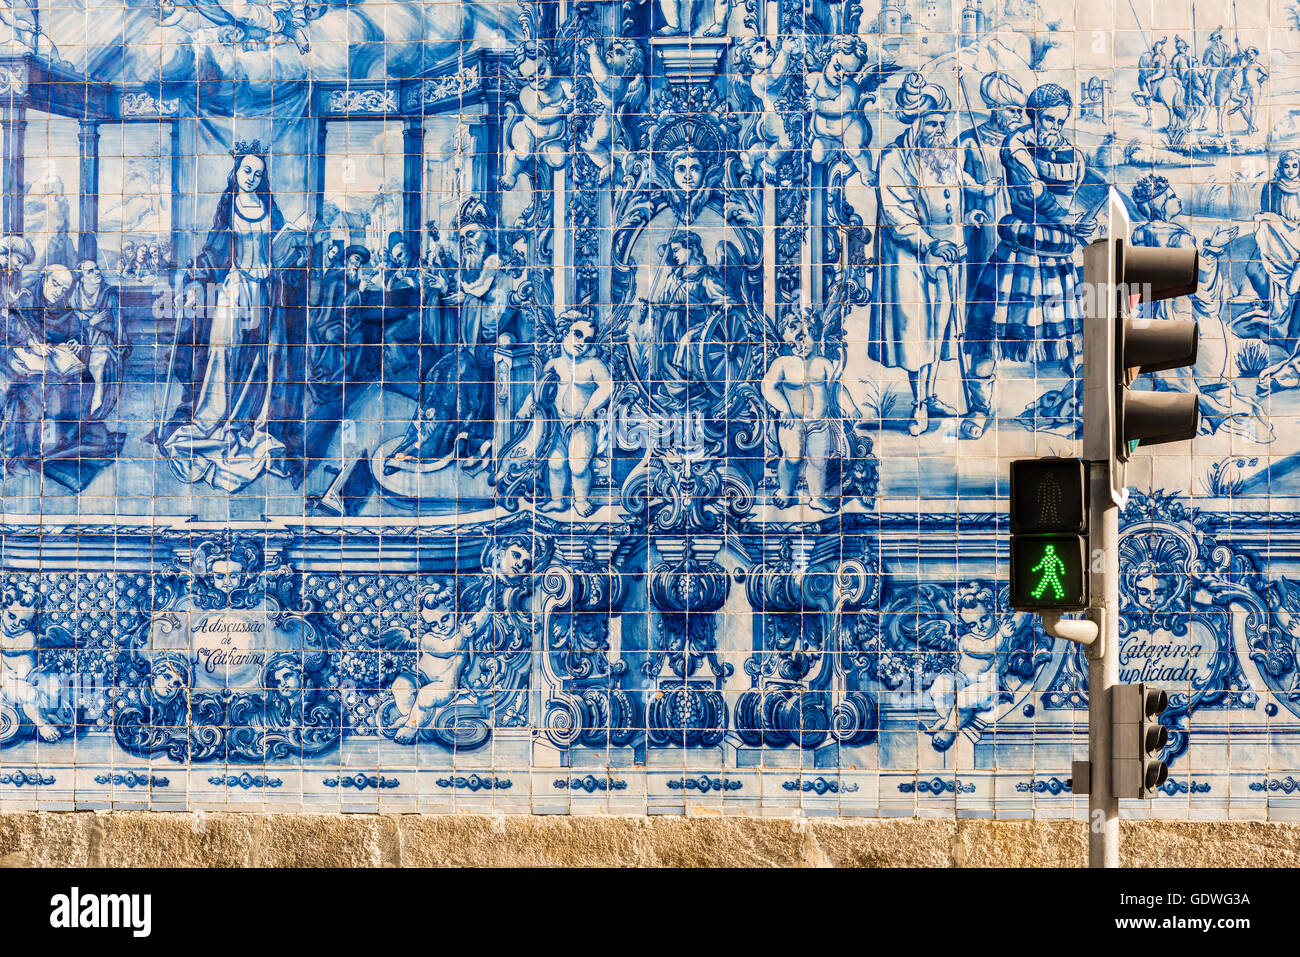 Traditional azulejos hand-painted tiles covering the exterior wall of the Capela das Almas church in Porto, Portugal - Stock Image